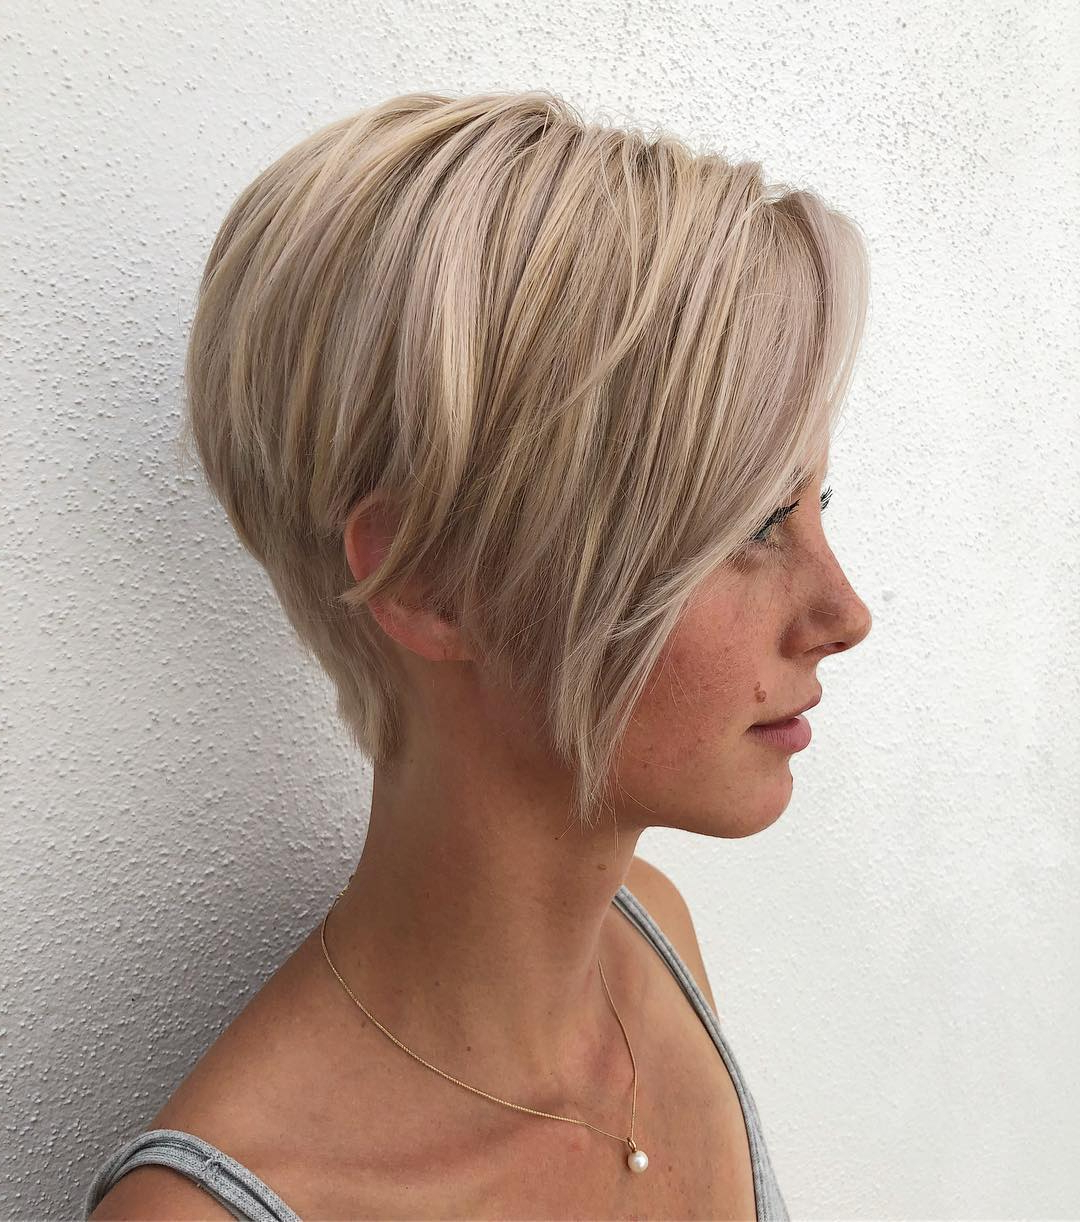 50 Head Turning Hairstyles For Thin Hair To Flaunt In 2019 Within Short Shag Blunt Haircuts (View 8 of 20)